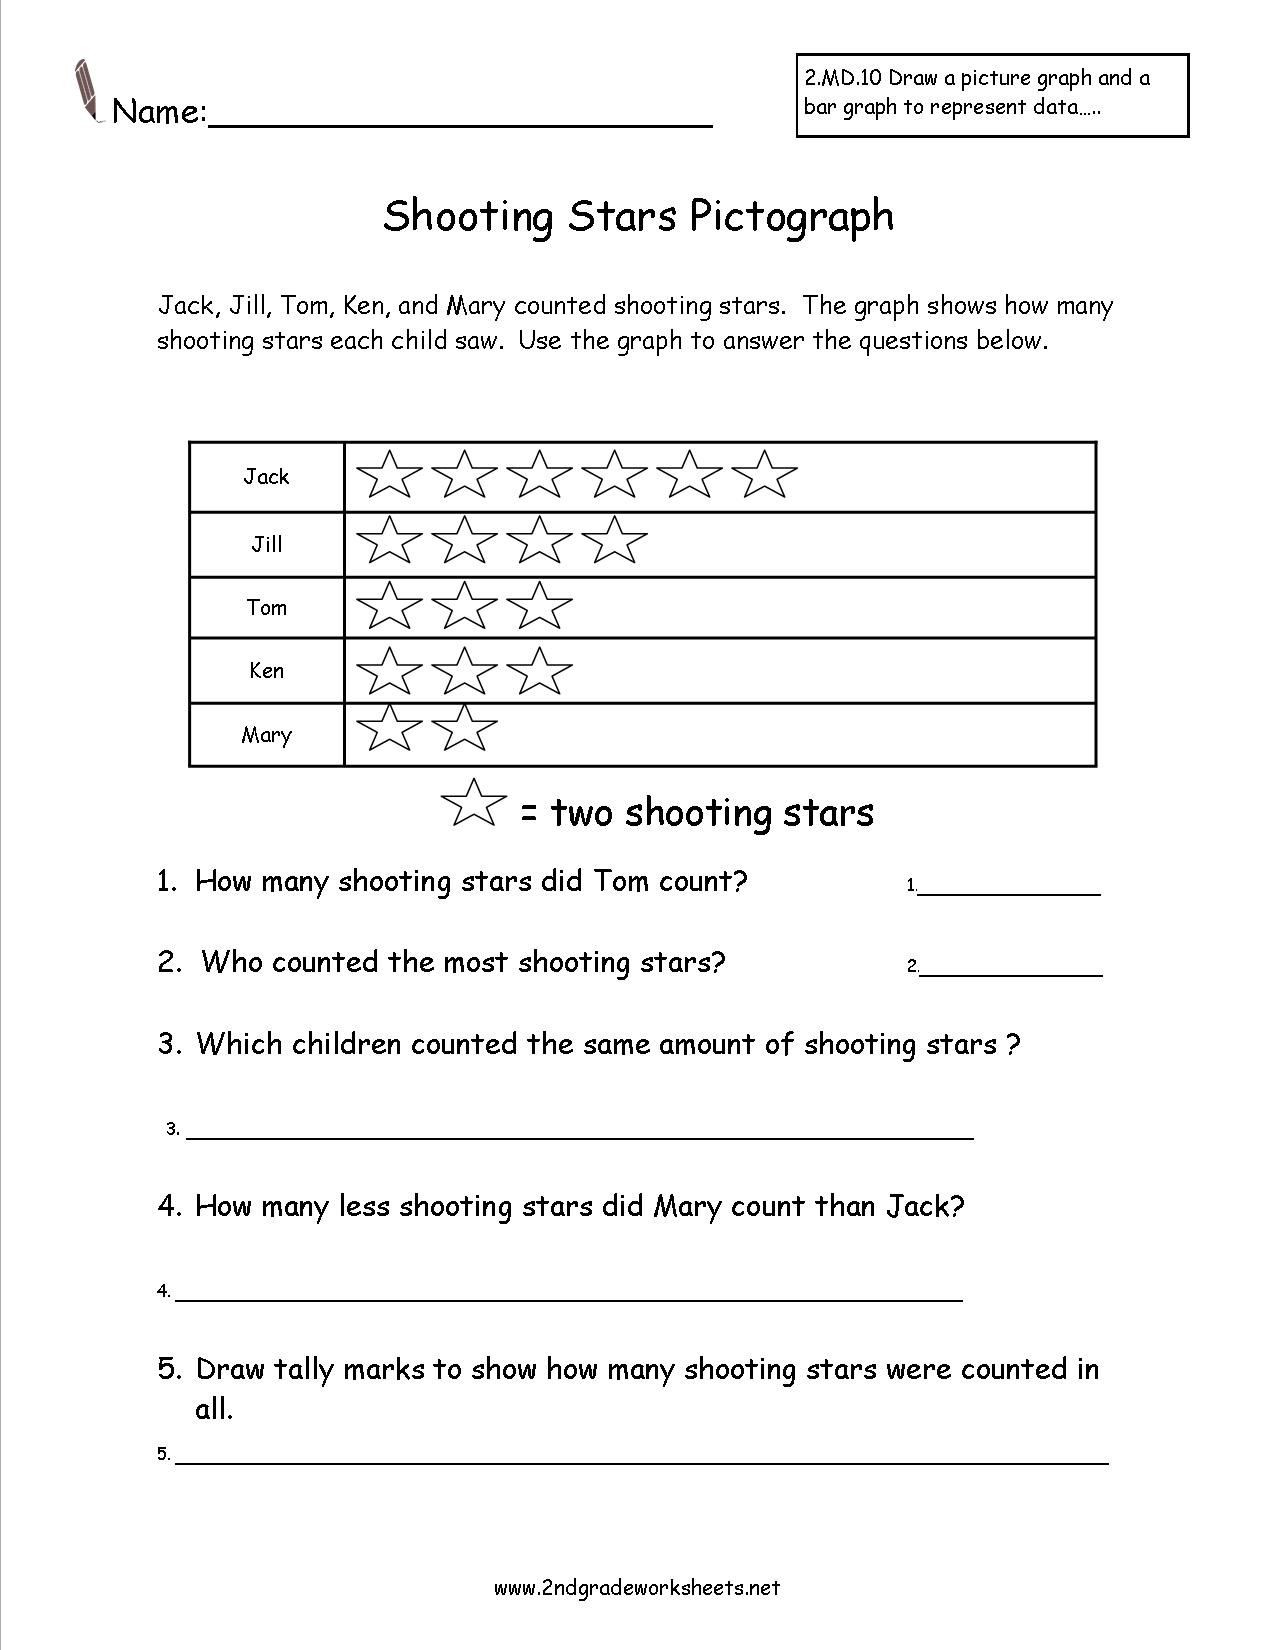 Pictograph Worksheets 2nd Grade Shooting Stars Pictograph Worksheet